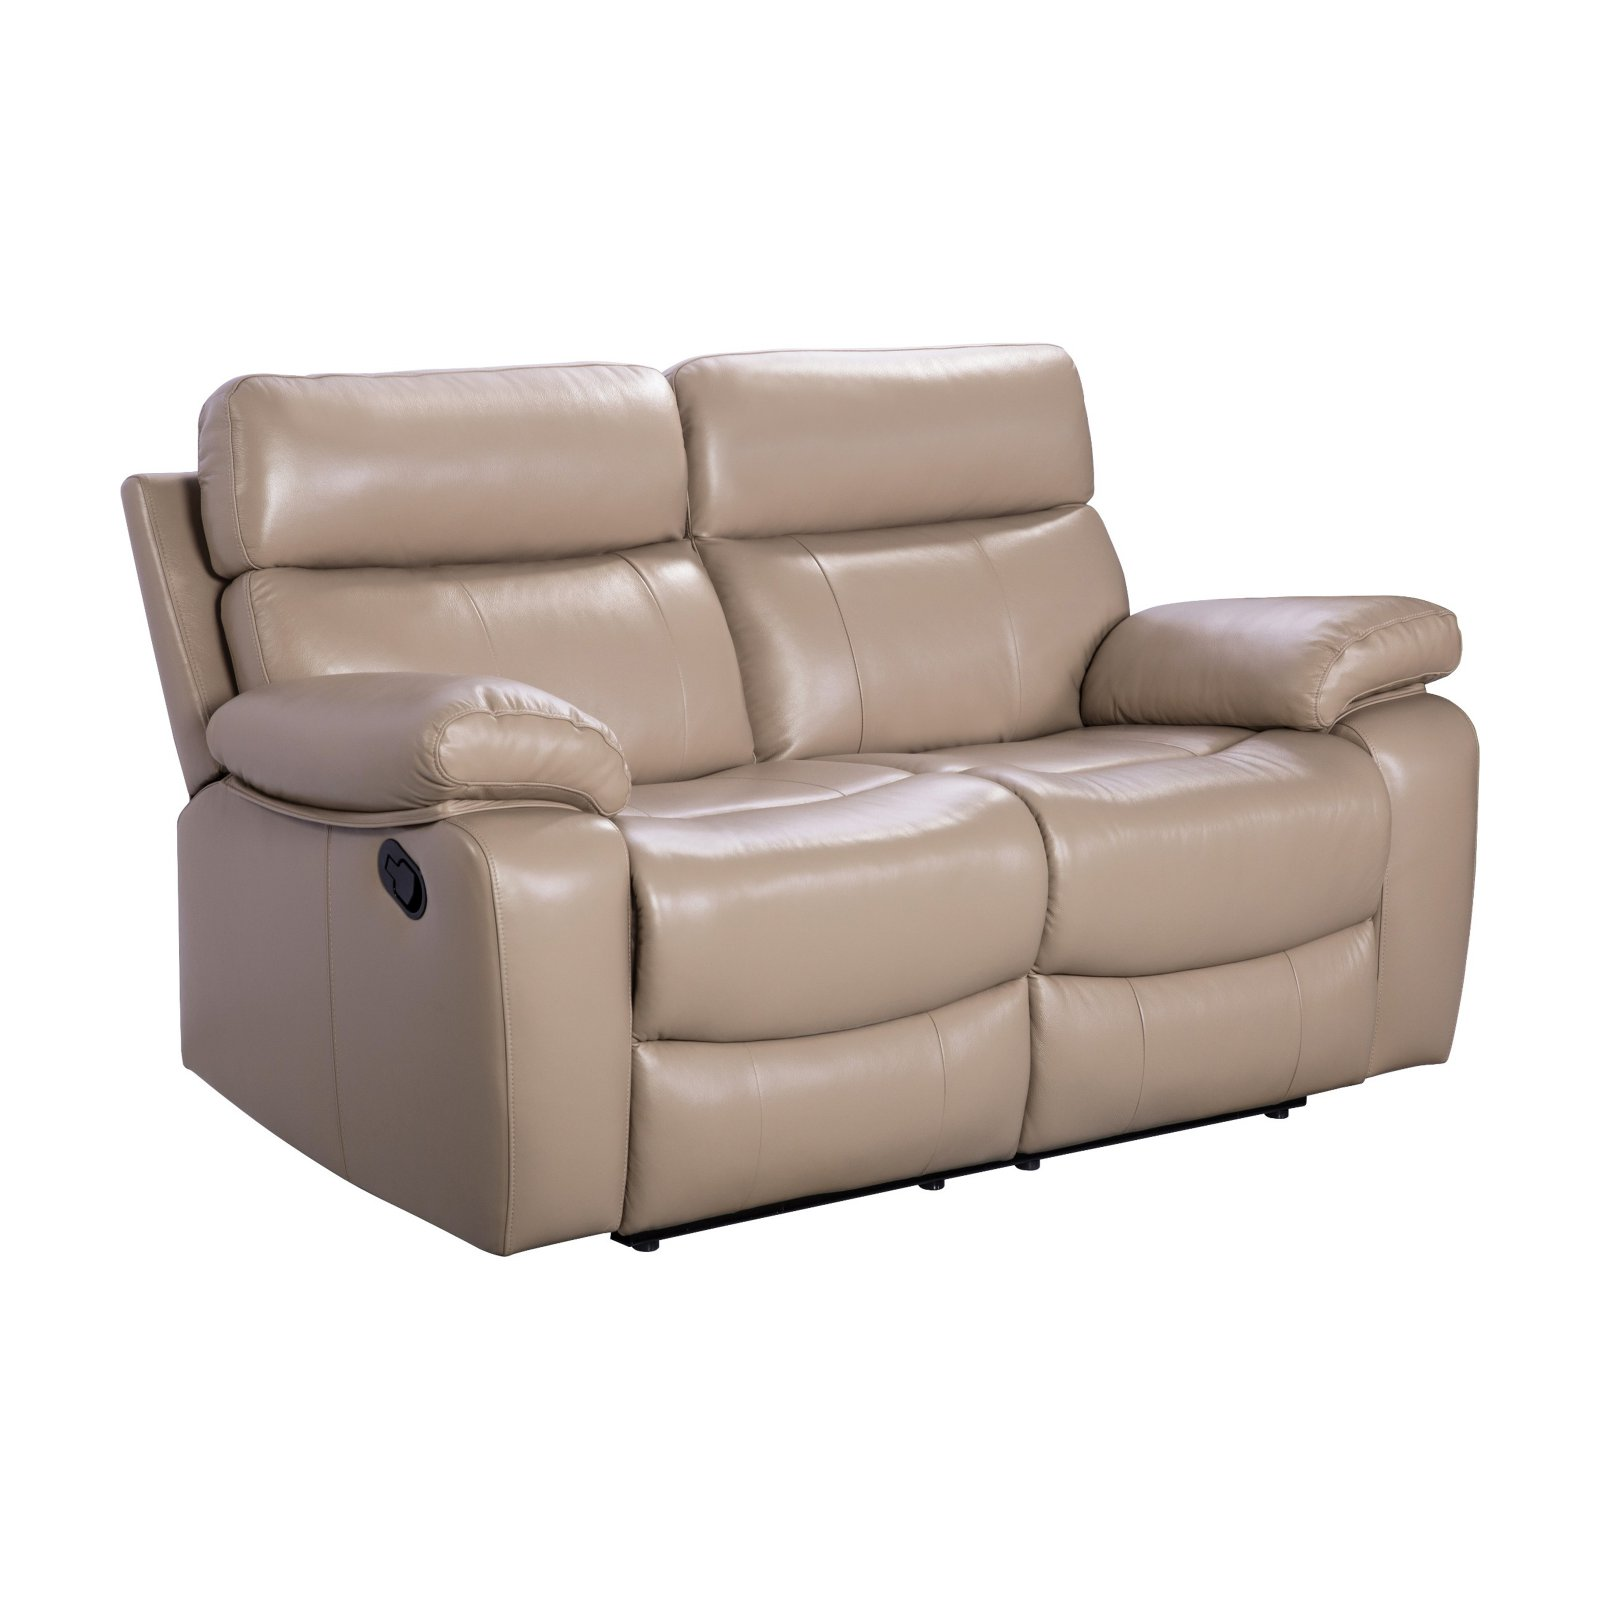 Surprising Abbyson Living Levi Leather Reclining Loveseat Products In Unemploymentrelief Wooden Chair Designs For Living Room Unemploymentrelieforg